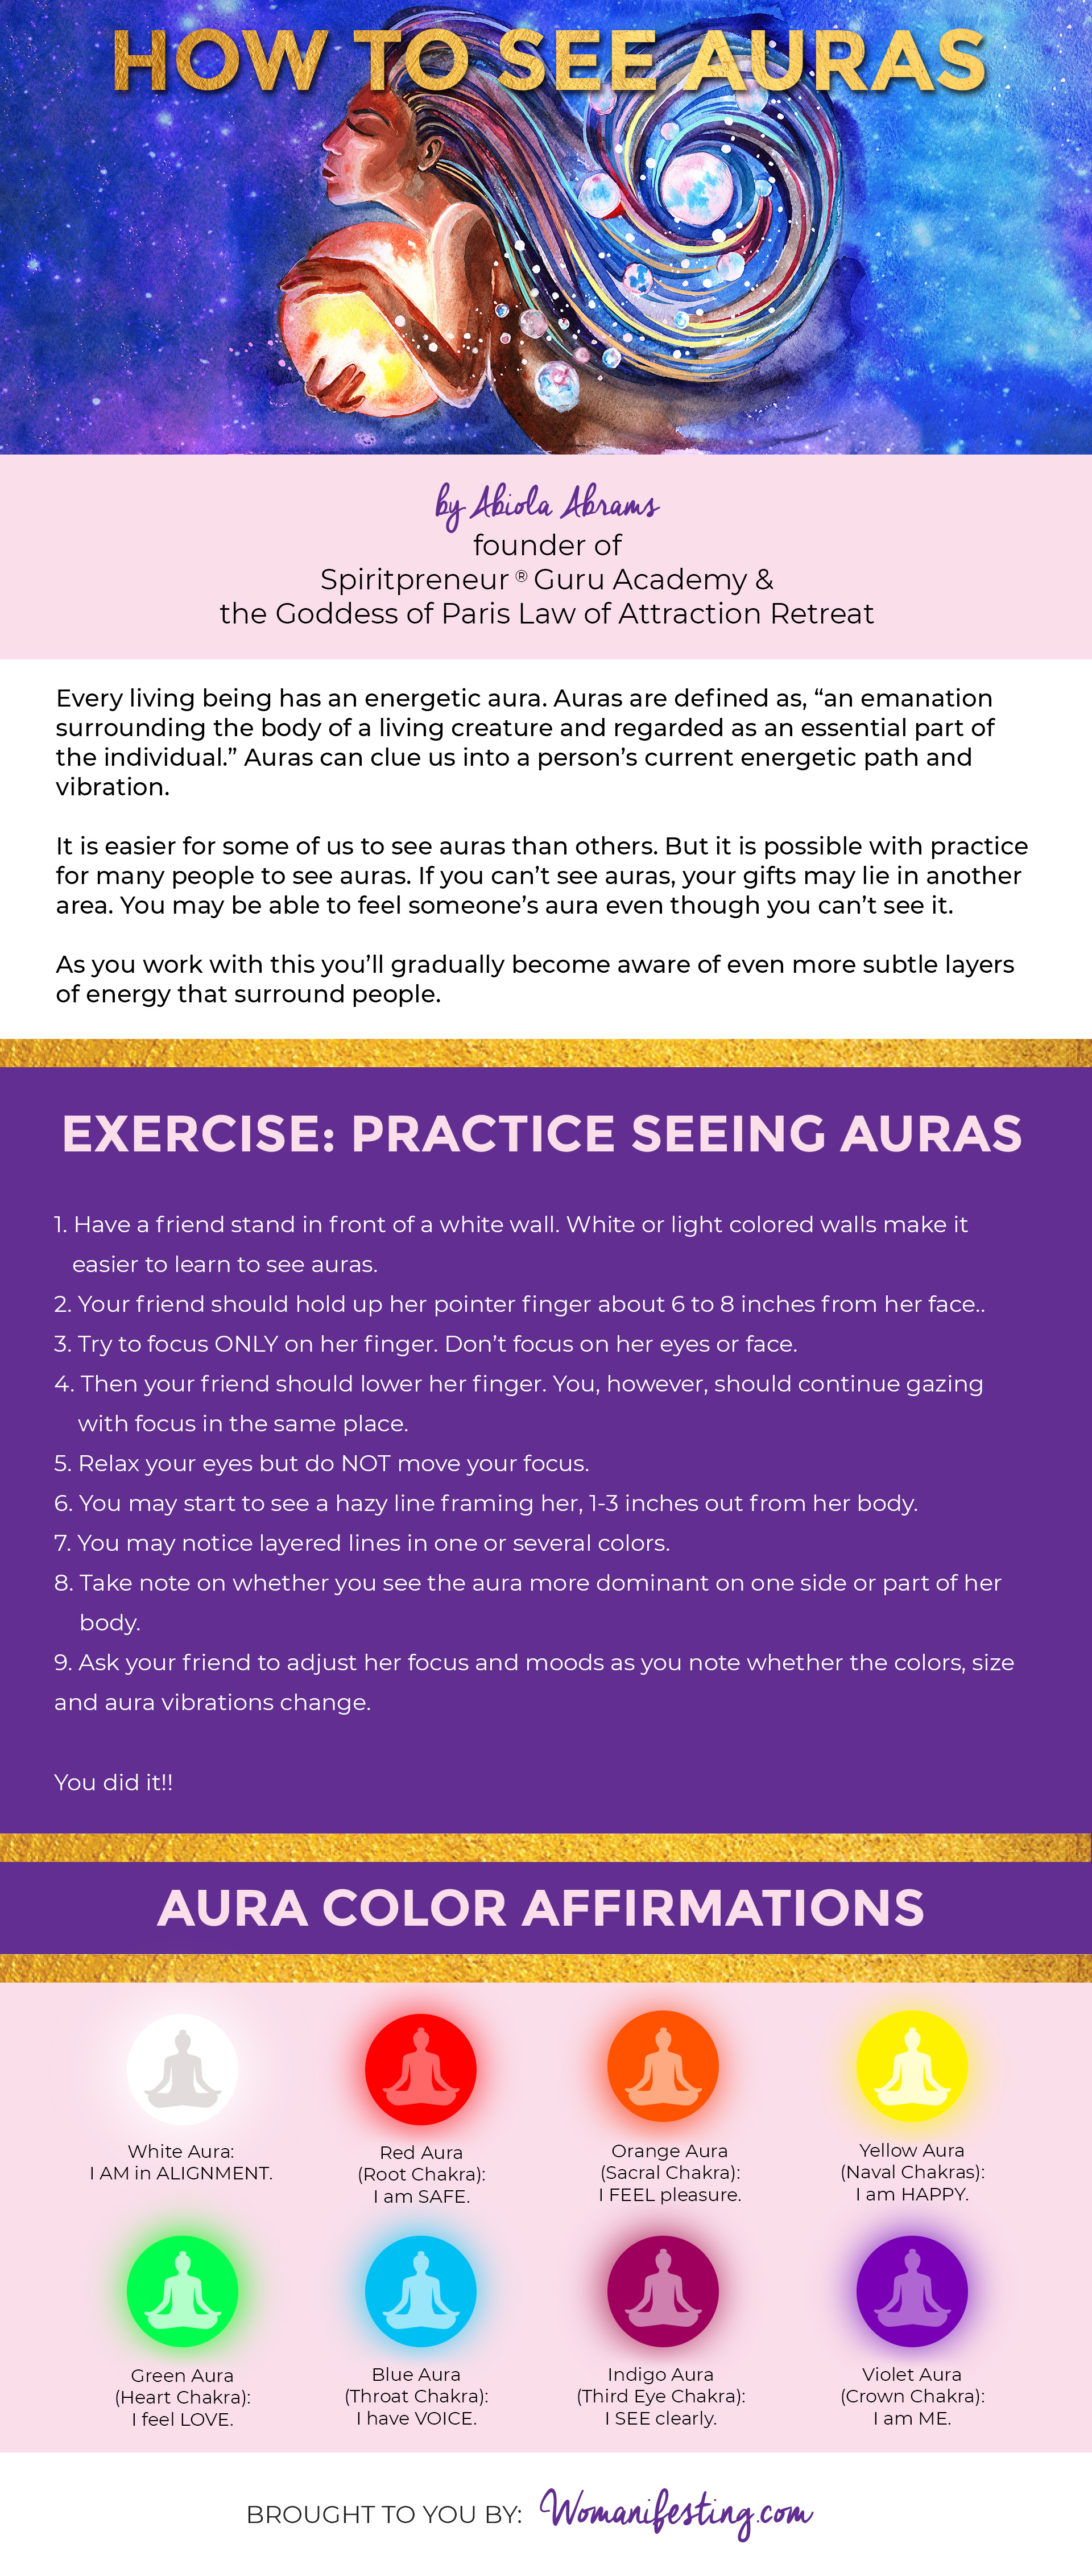 How to See Auras [Infographic]